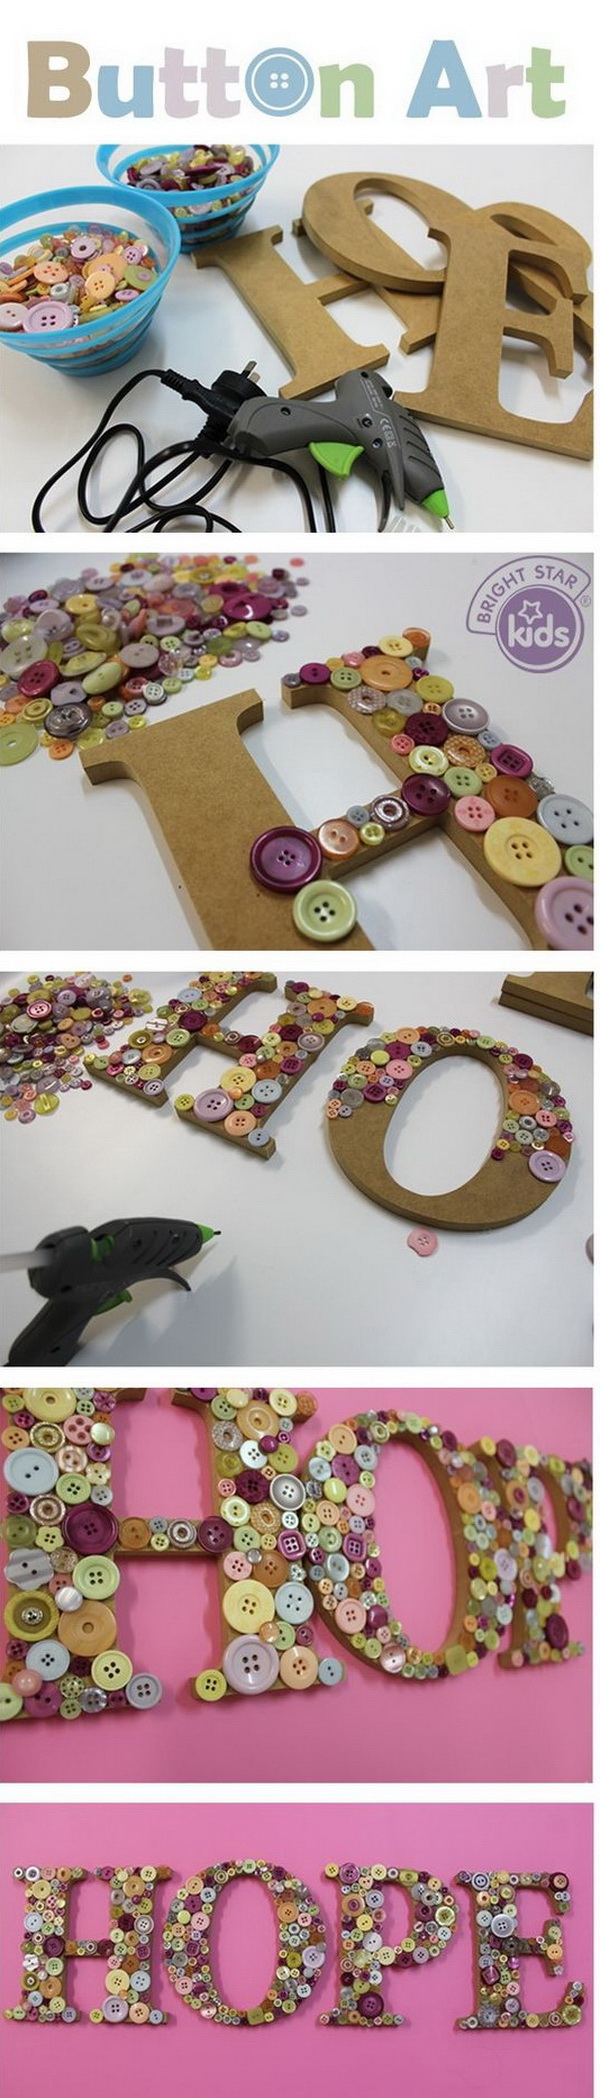 Button Letter Wall Art. Button art – Perfect for birthday party decoration. Easy to make and extremely creative!